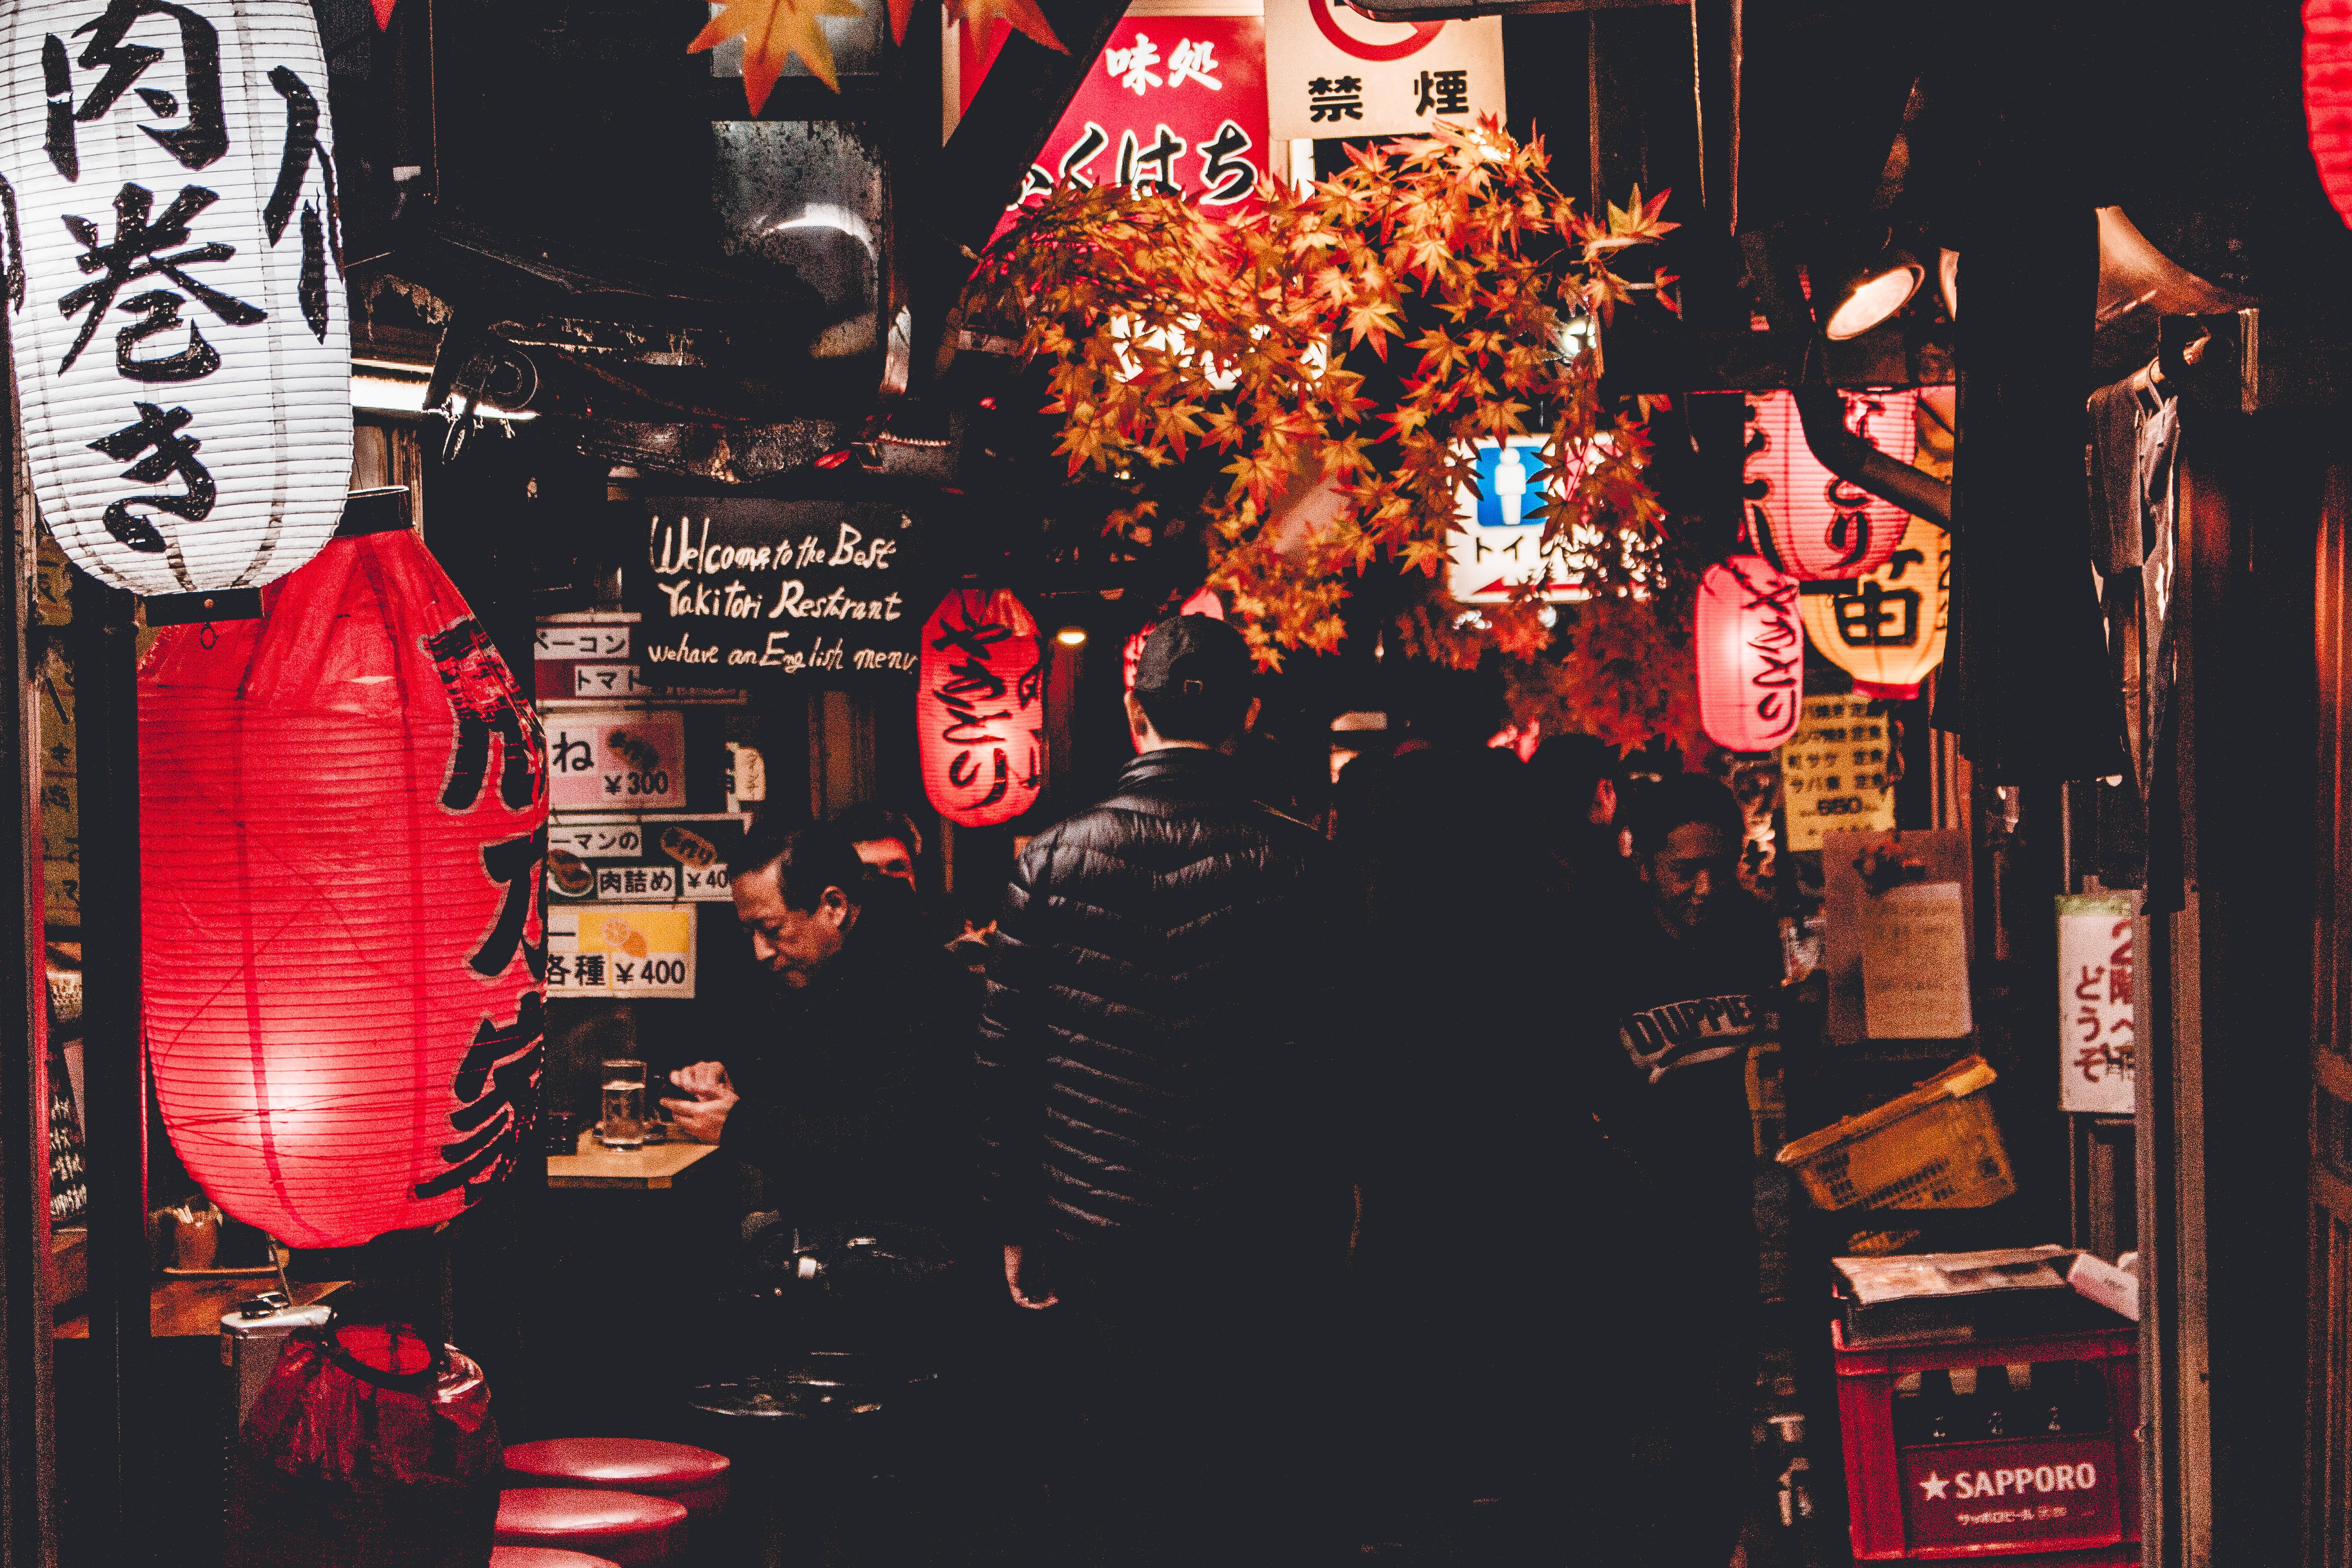 People walking past stalls in a narrow market alley in an Asian City at night